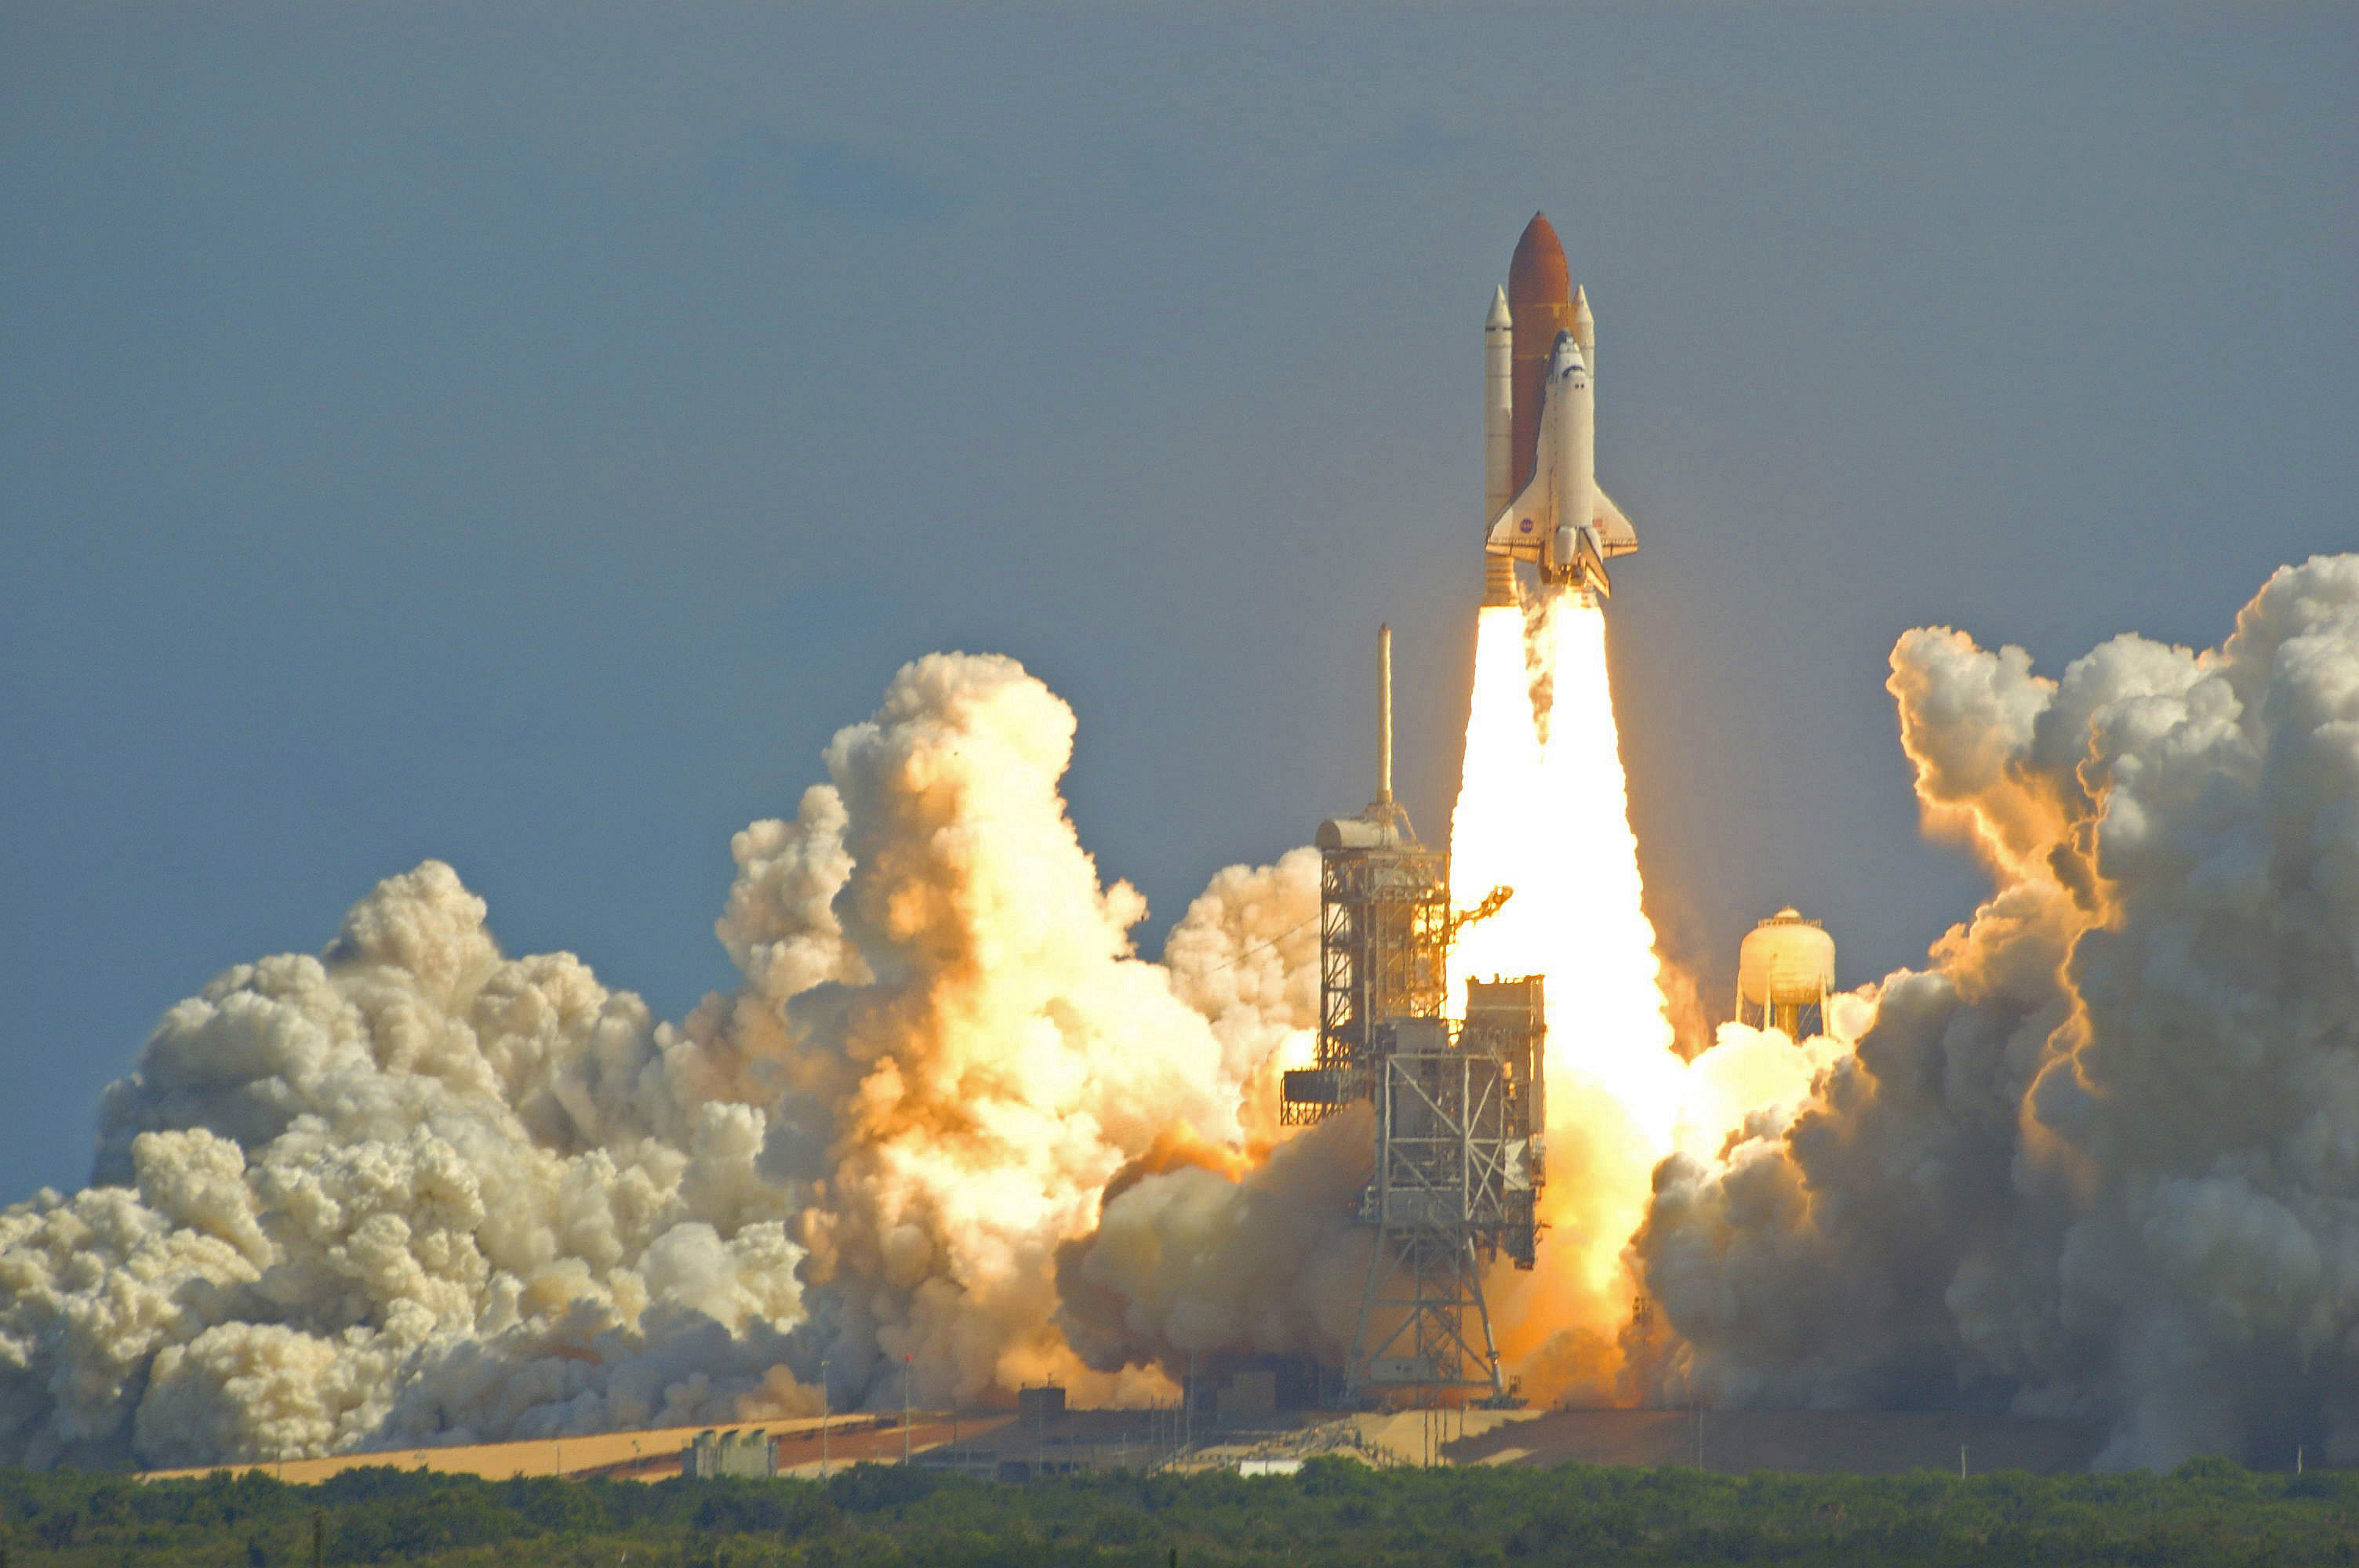 space shuttle incidents - photo #49